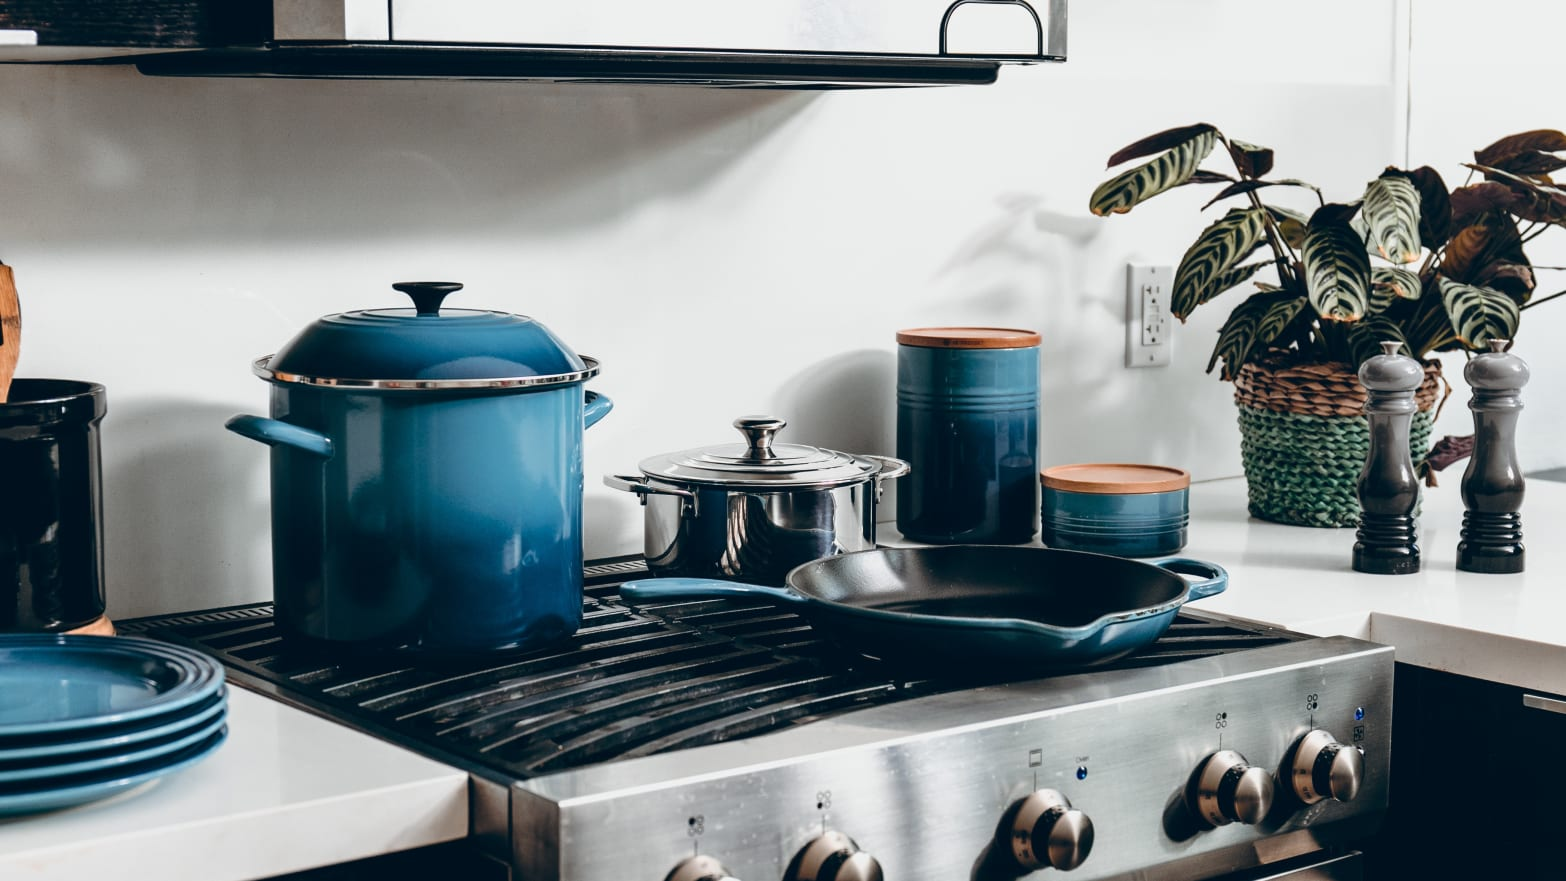 How To Get a Better Kitchen